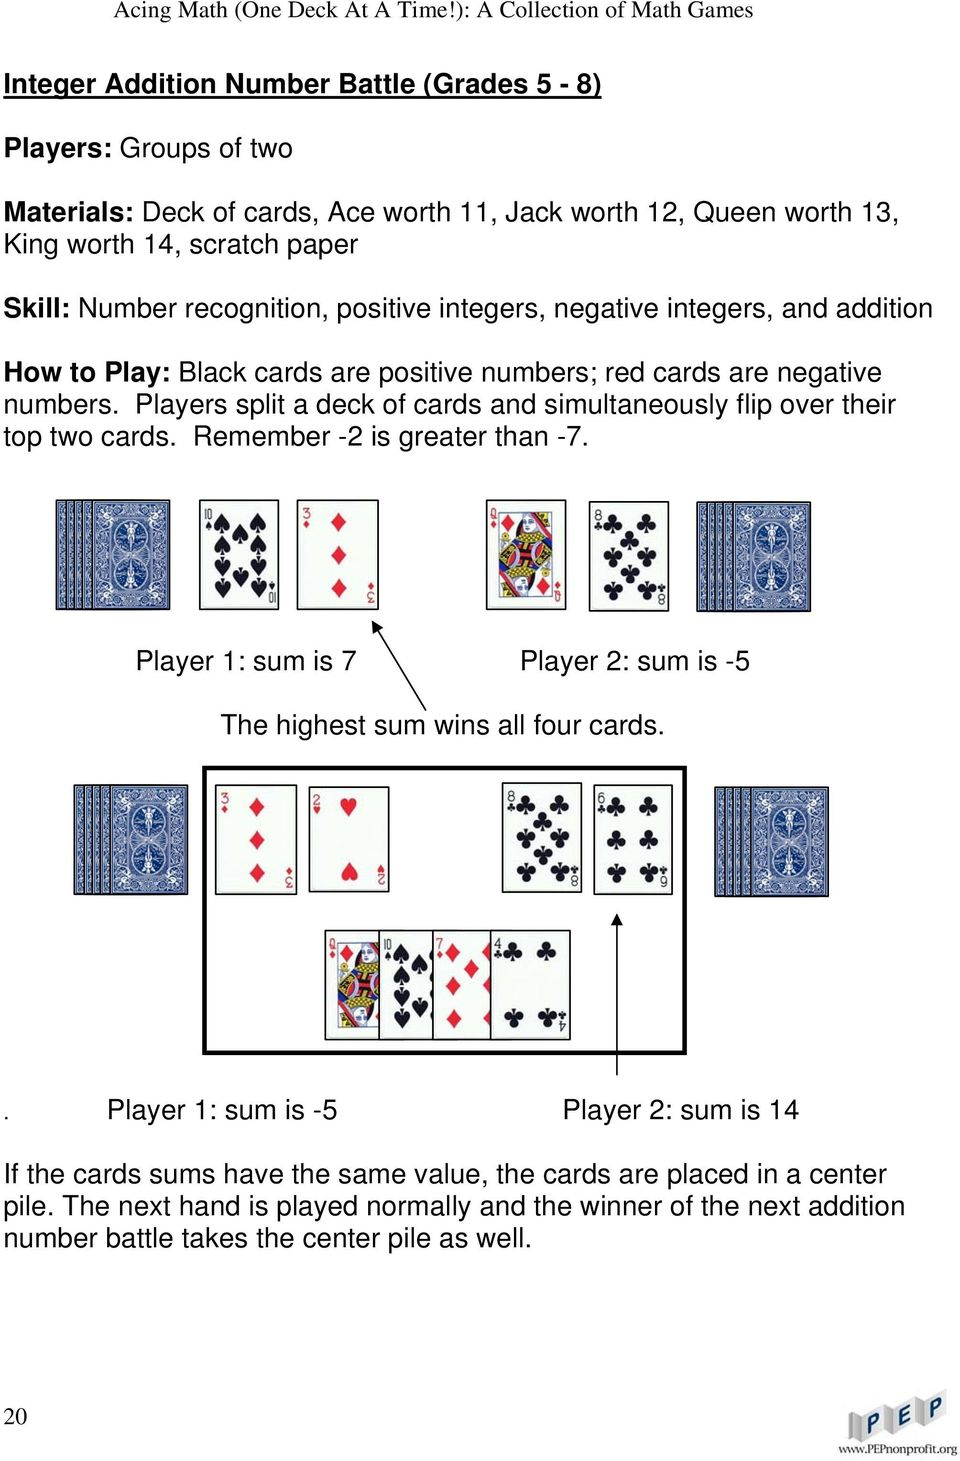 Players split a deck of cards and simultaneously flip over their top two cards. Remember -2 is greater than -7. Player 1: sum is 7 Player 2: sum is -5 The highest sum wins all four cards.